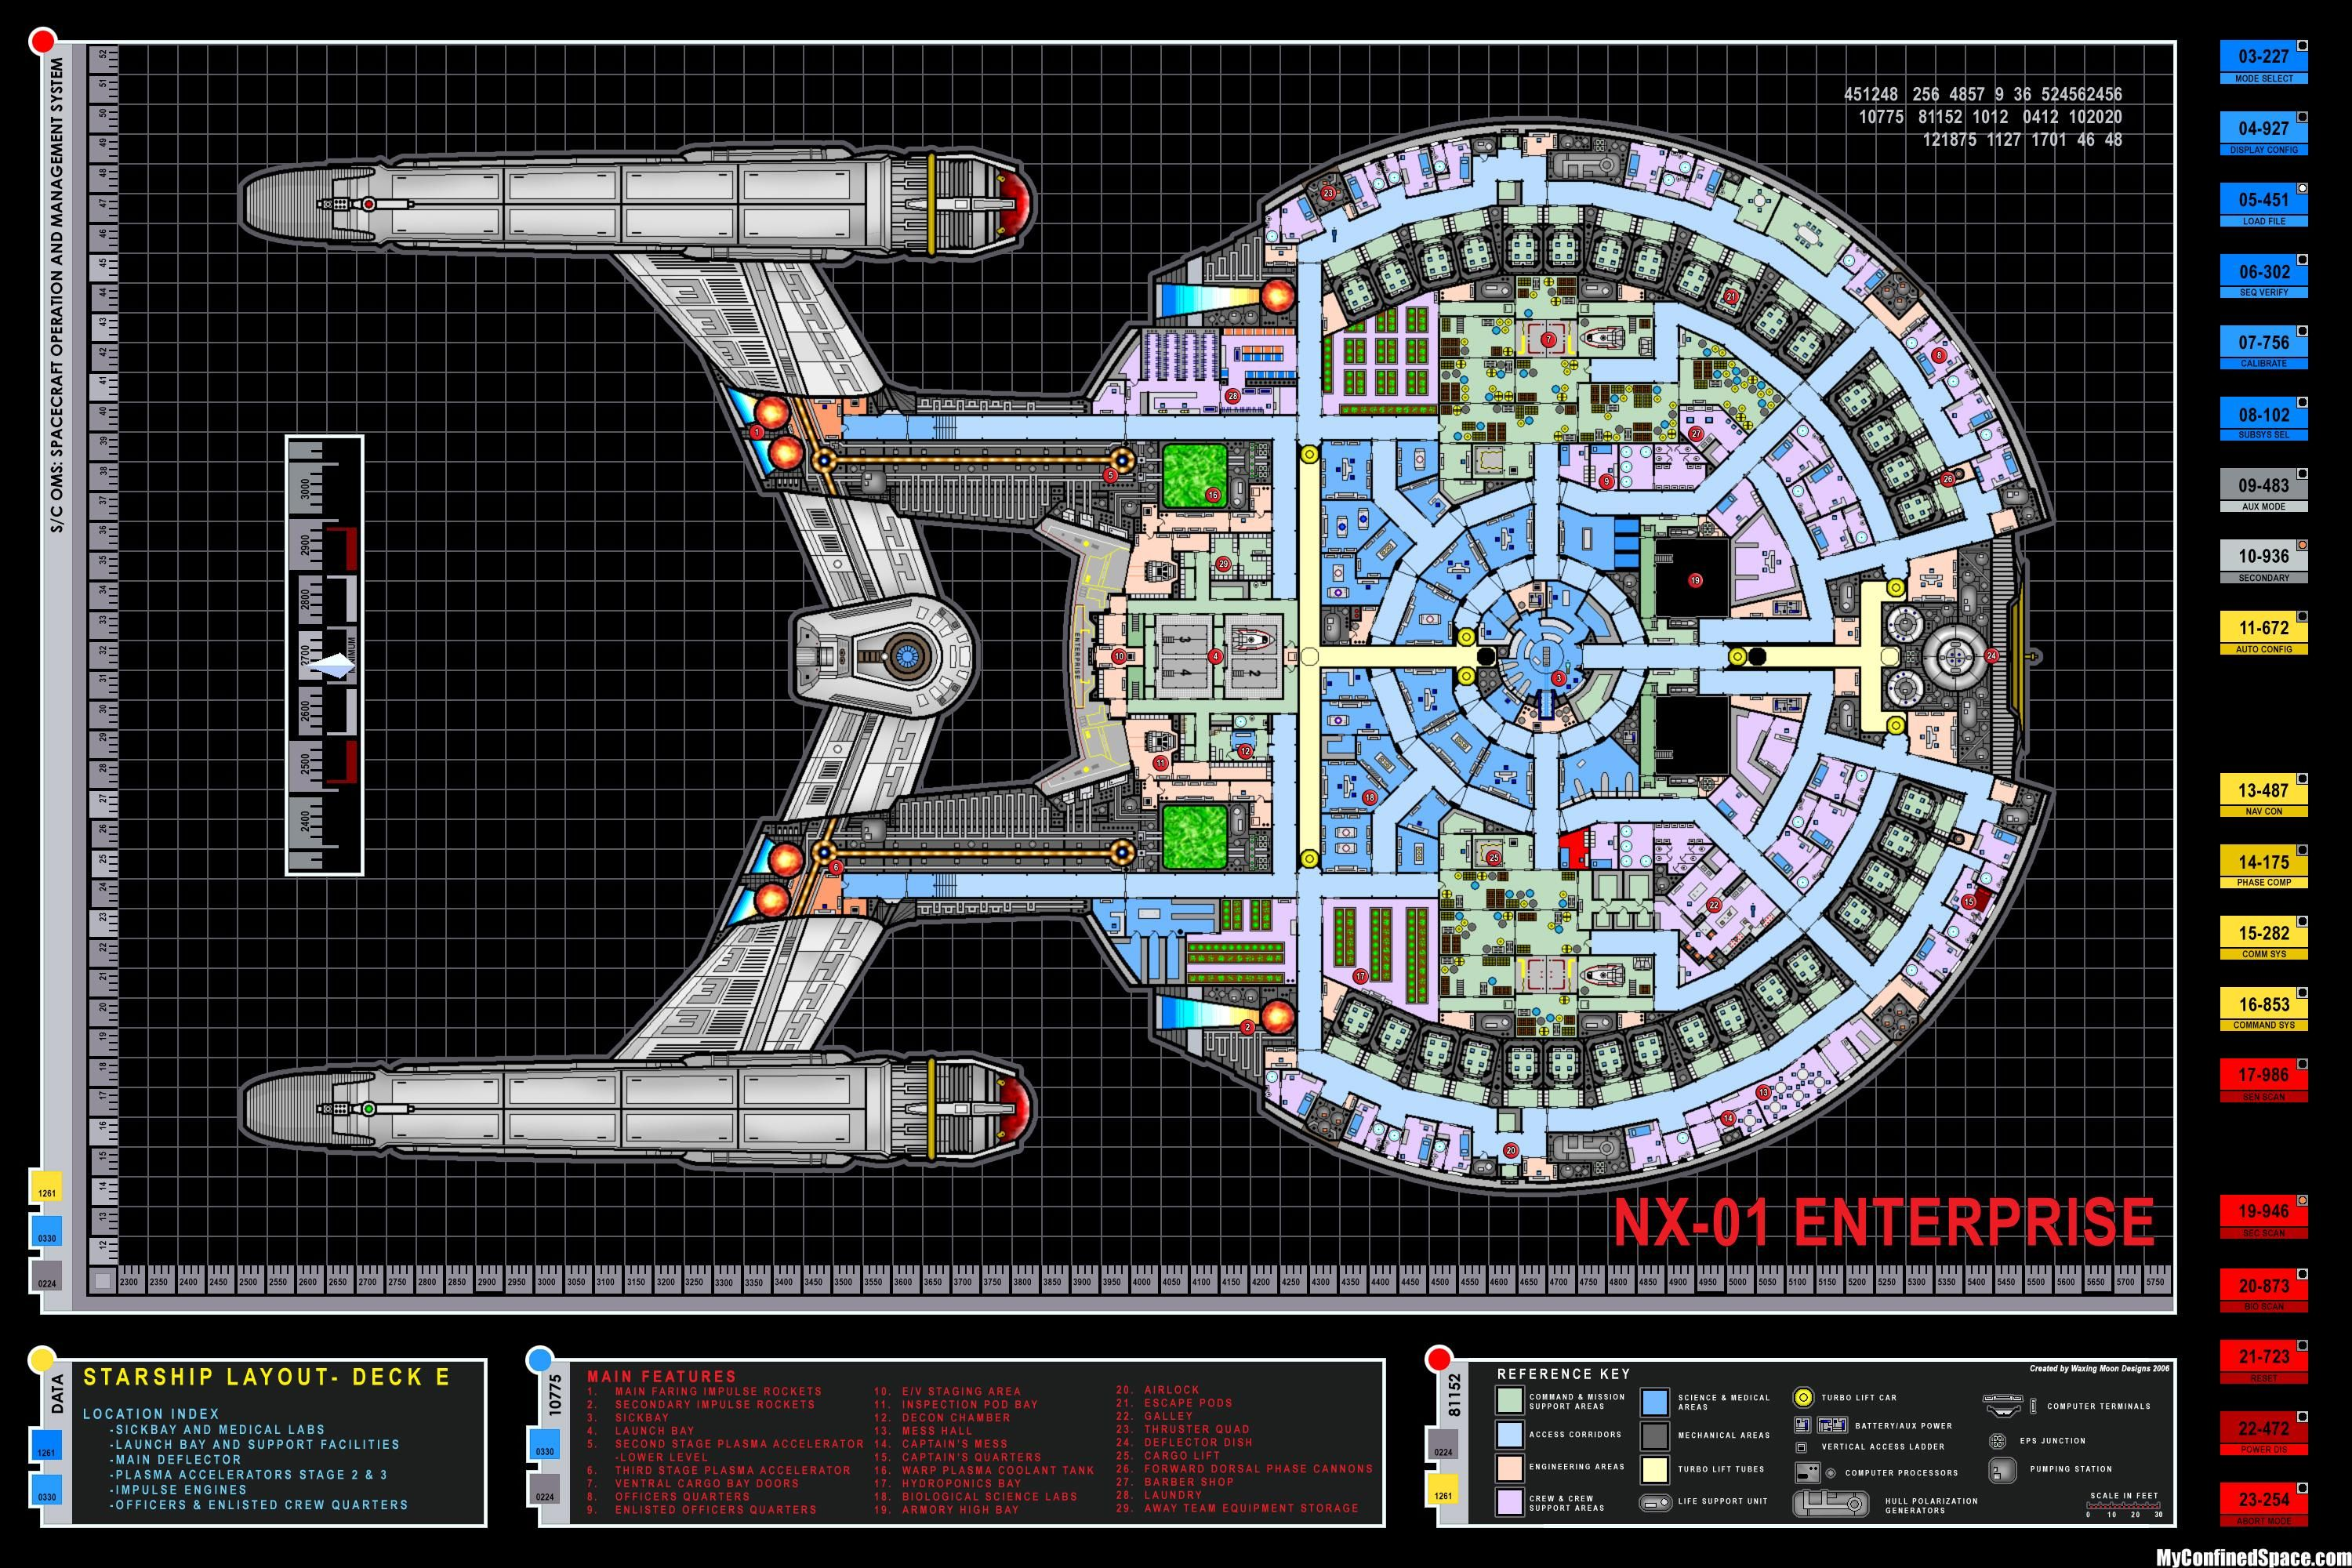 Colored Schematic Of Deck E; Columbia Class Starship; U.S.S. Enterprise NX  01